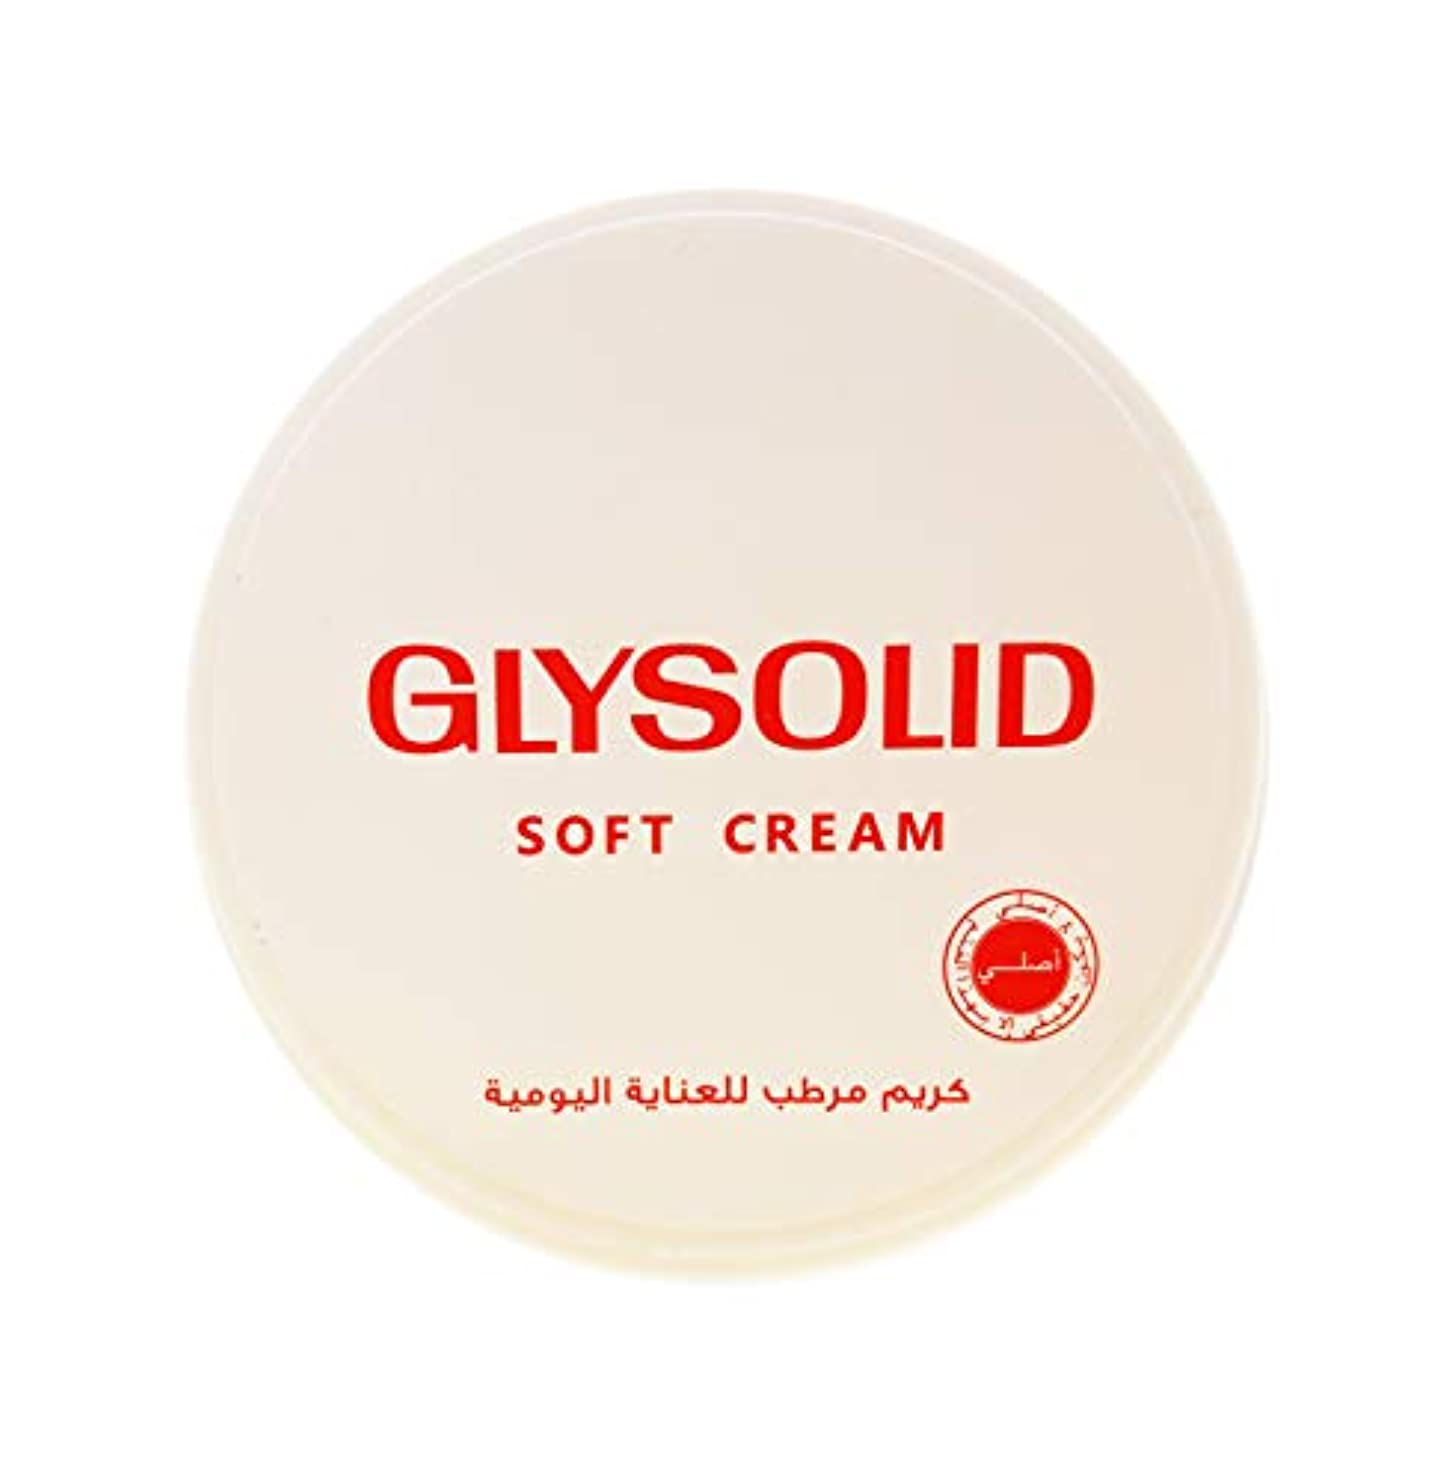 屈辱する症候群意見Glysolid Soft Cream Moisturizers For Dry Skin Face Hands Feet Elbow Body Softening With Glycerin Keeping Your...